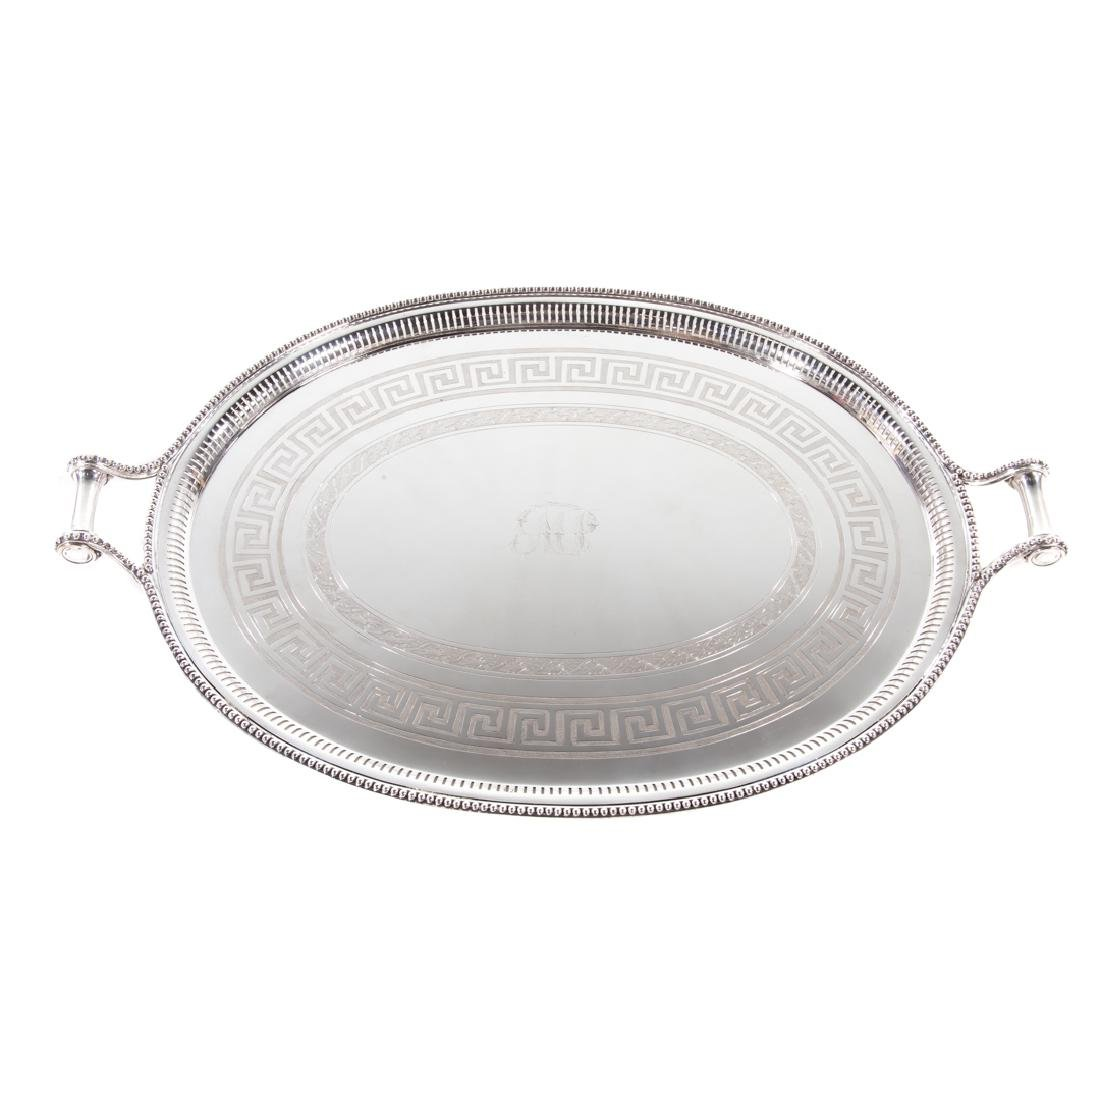 Sheffield plated butler's tray James Dixon & Sons